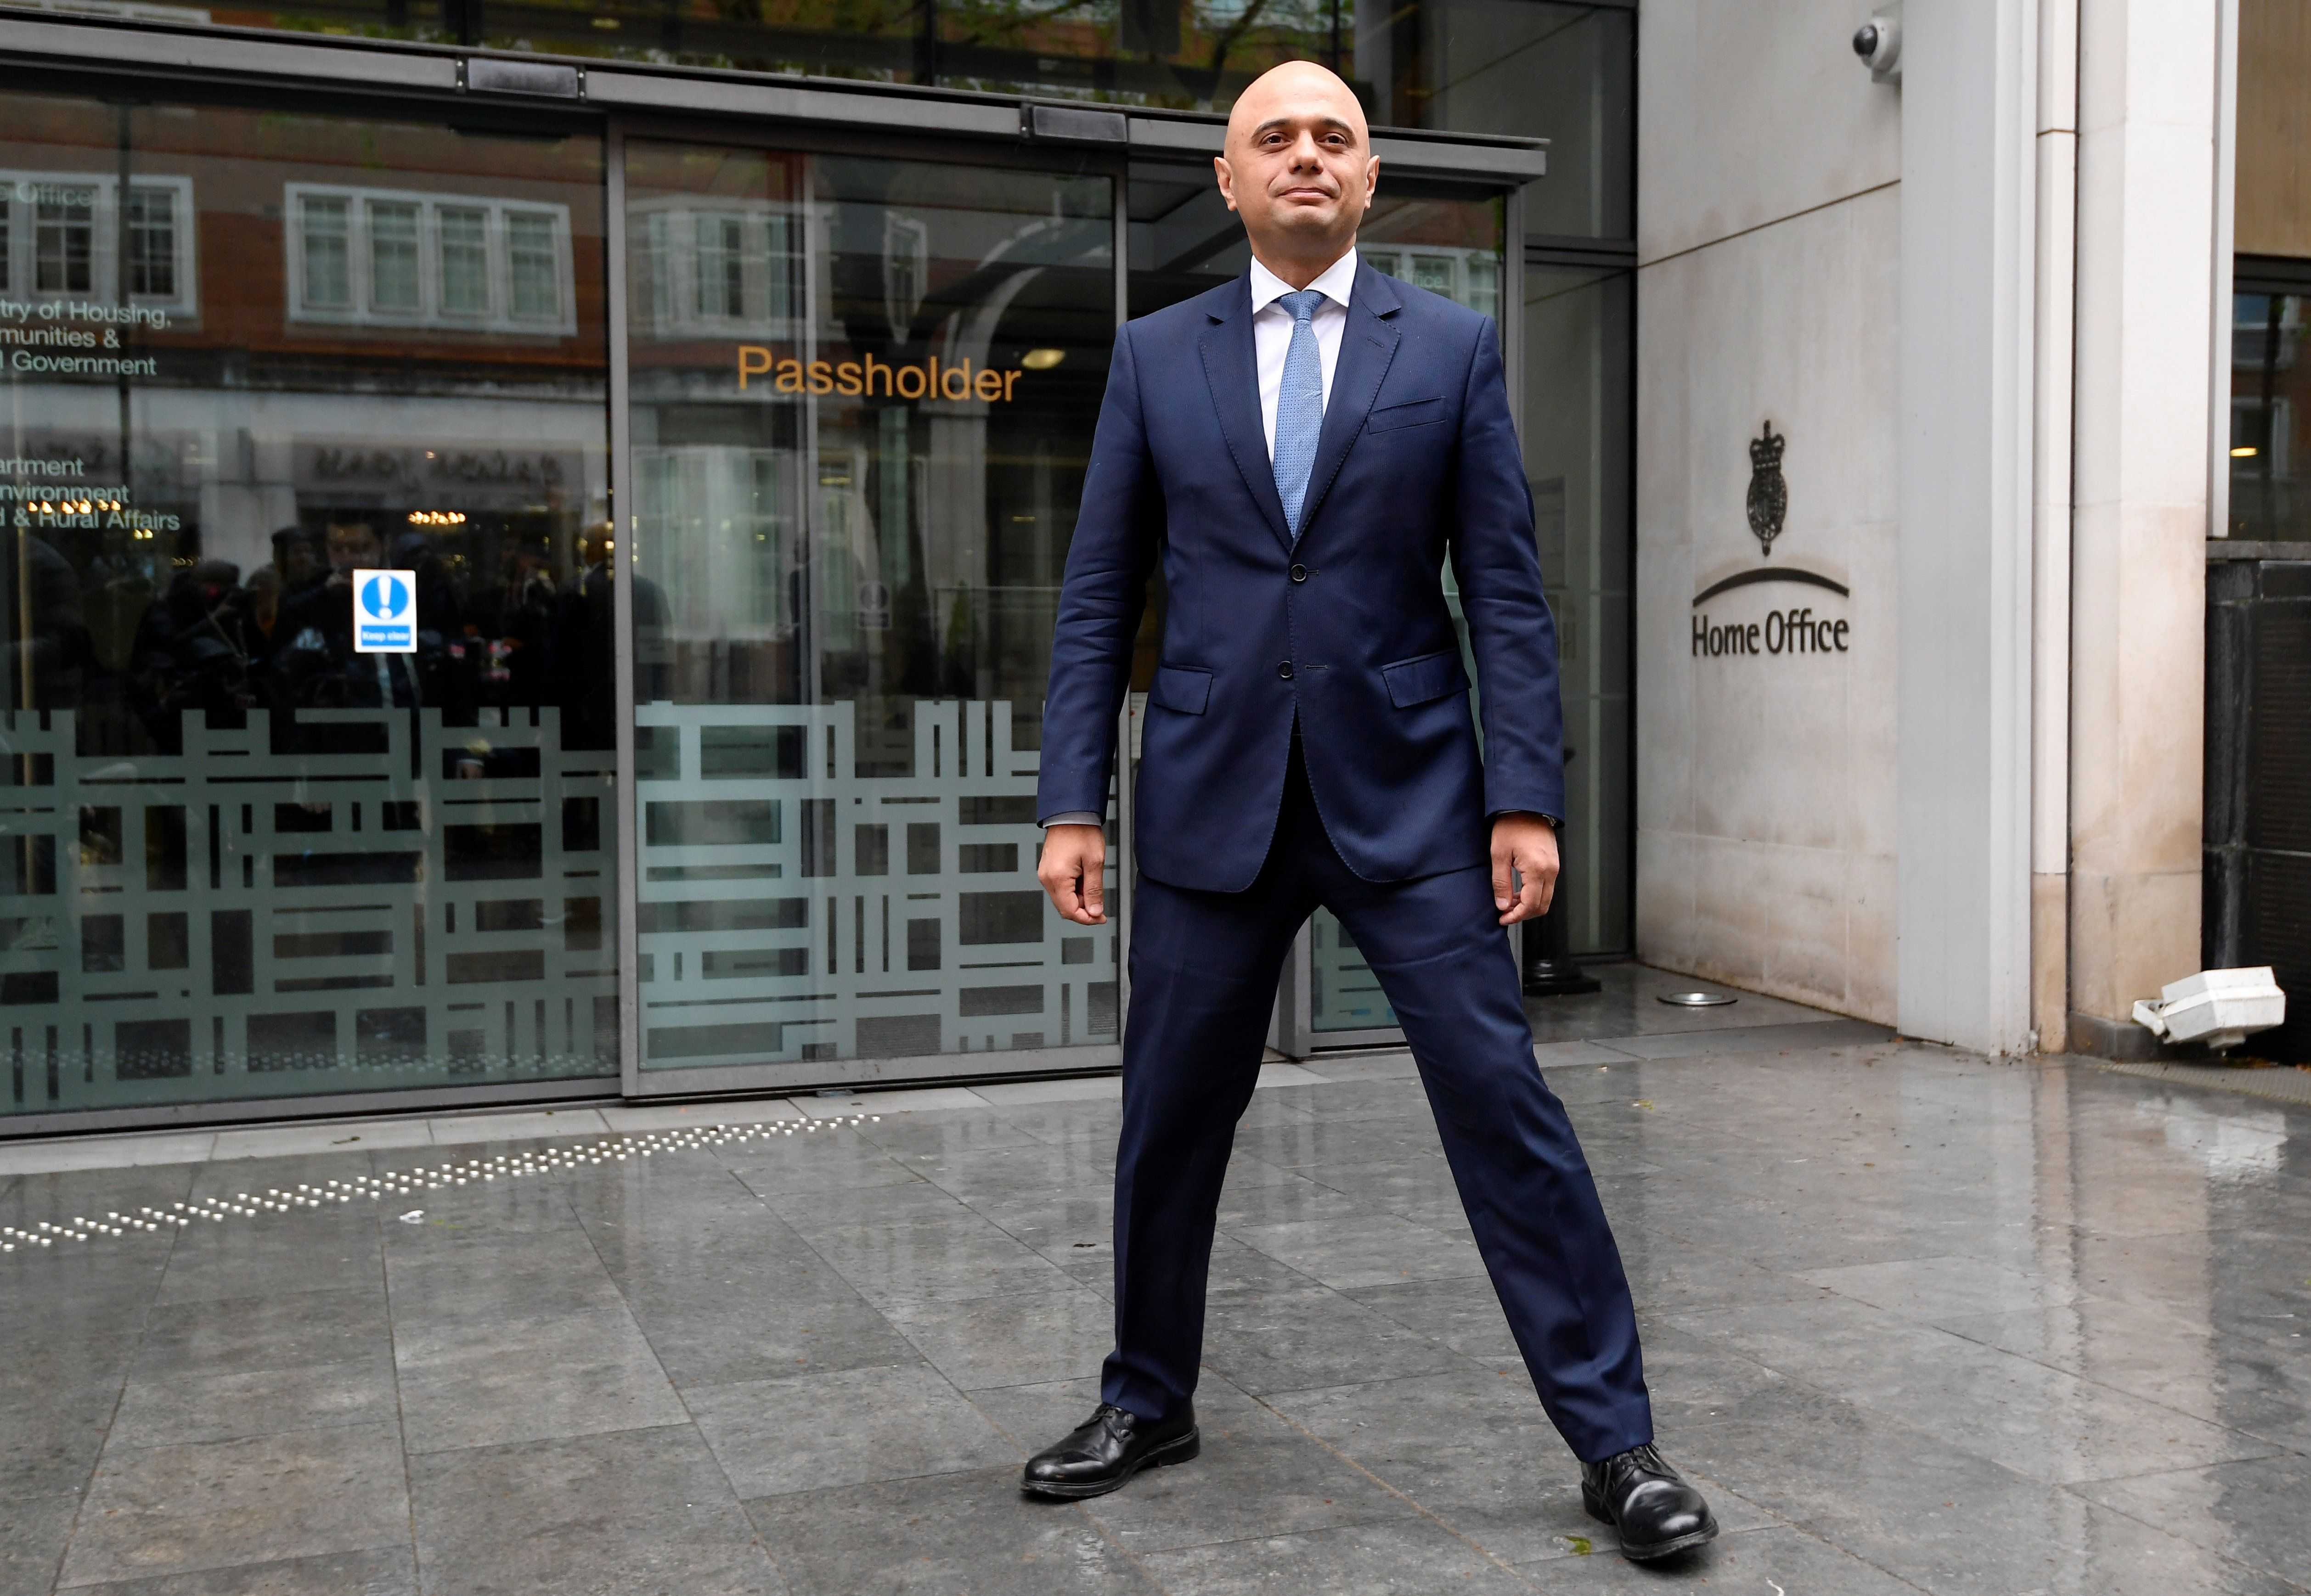 Sajid Javid's Pose Outside The Home Office Shows The Tory 'Power Stance' Is